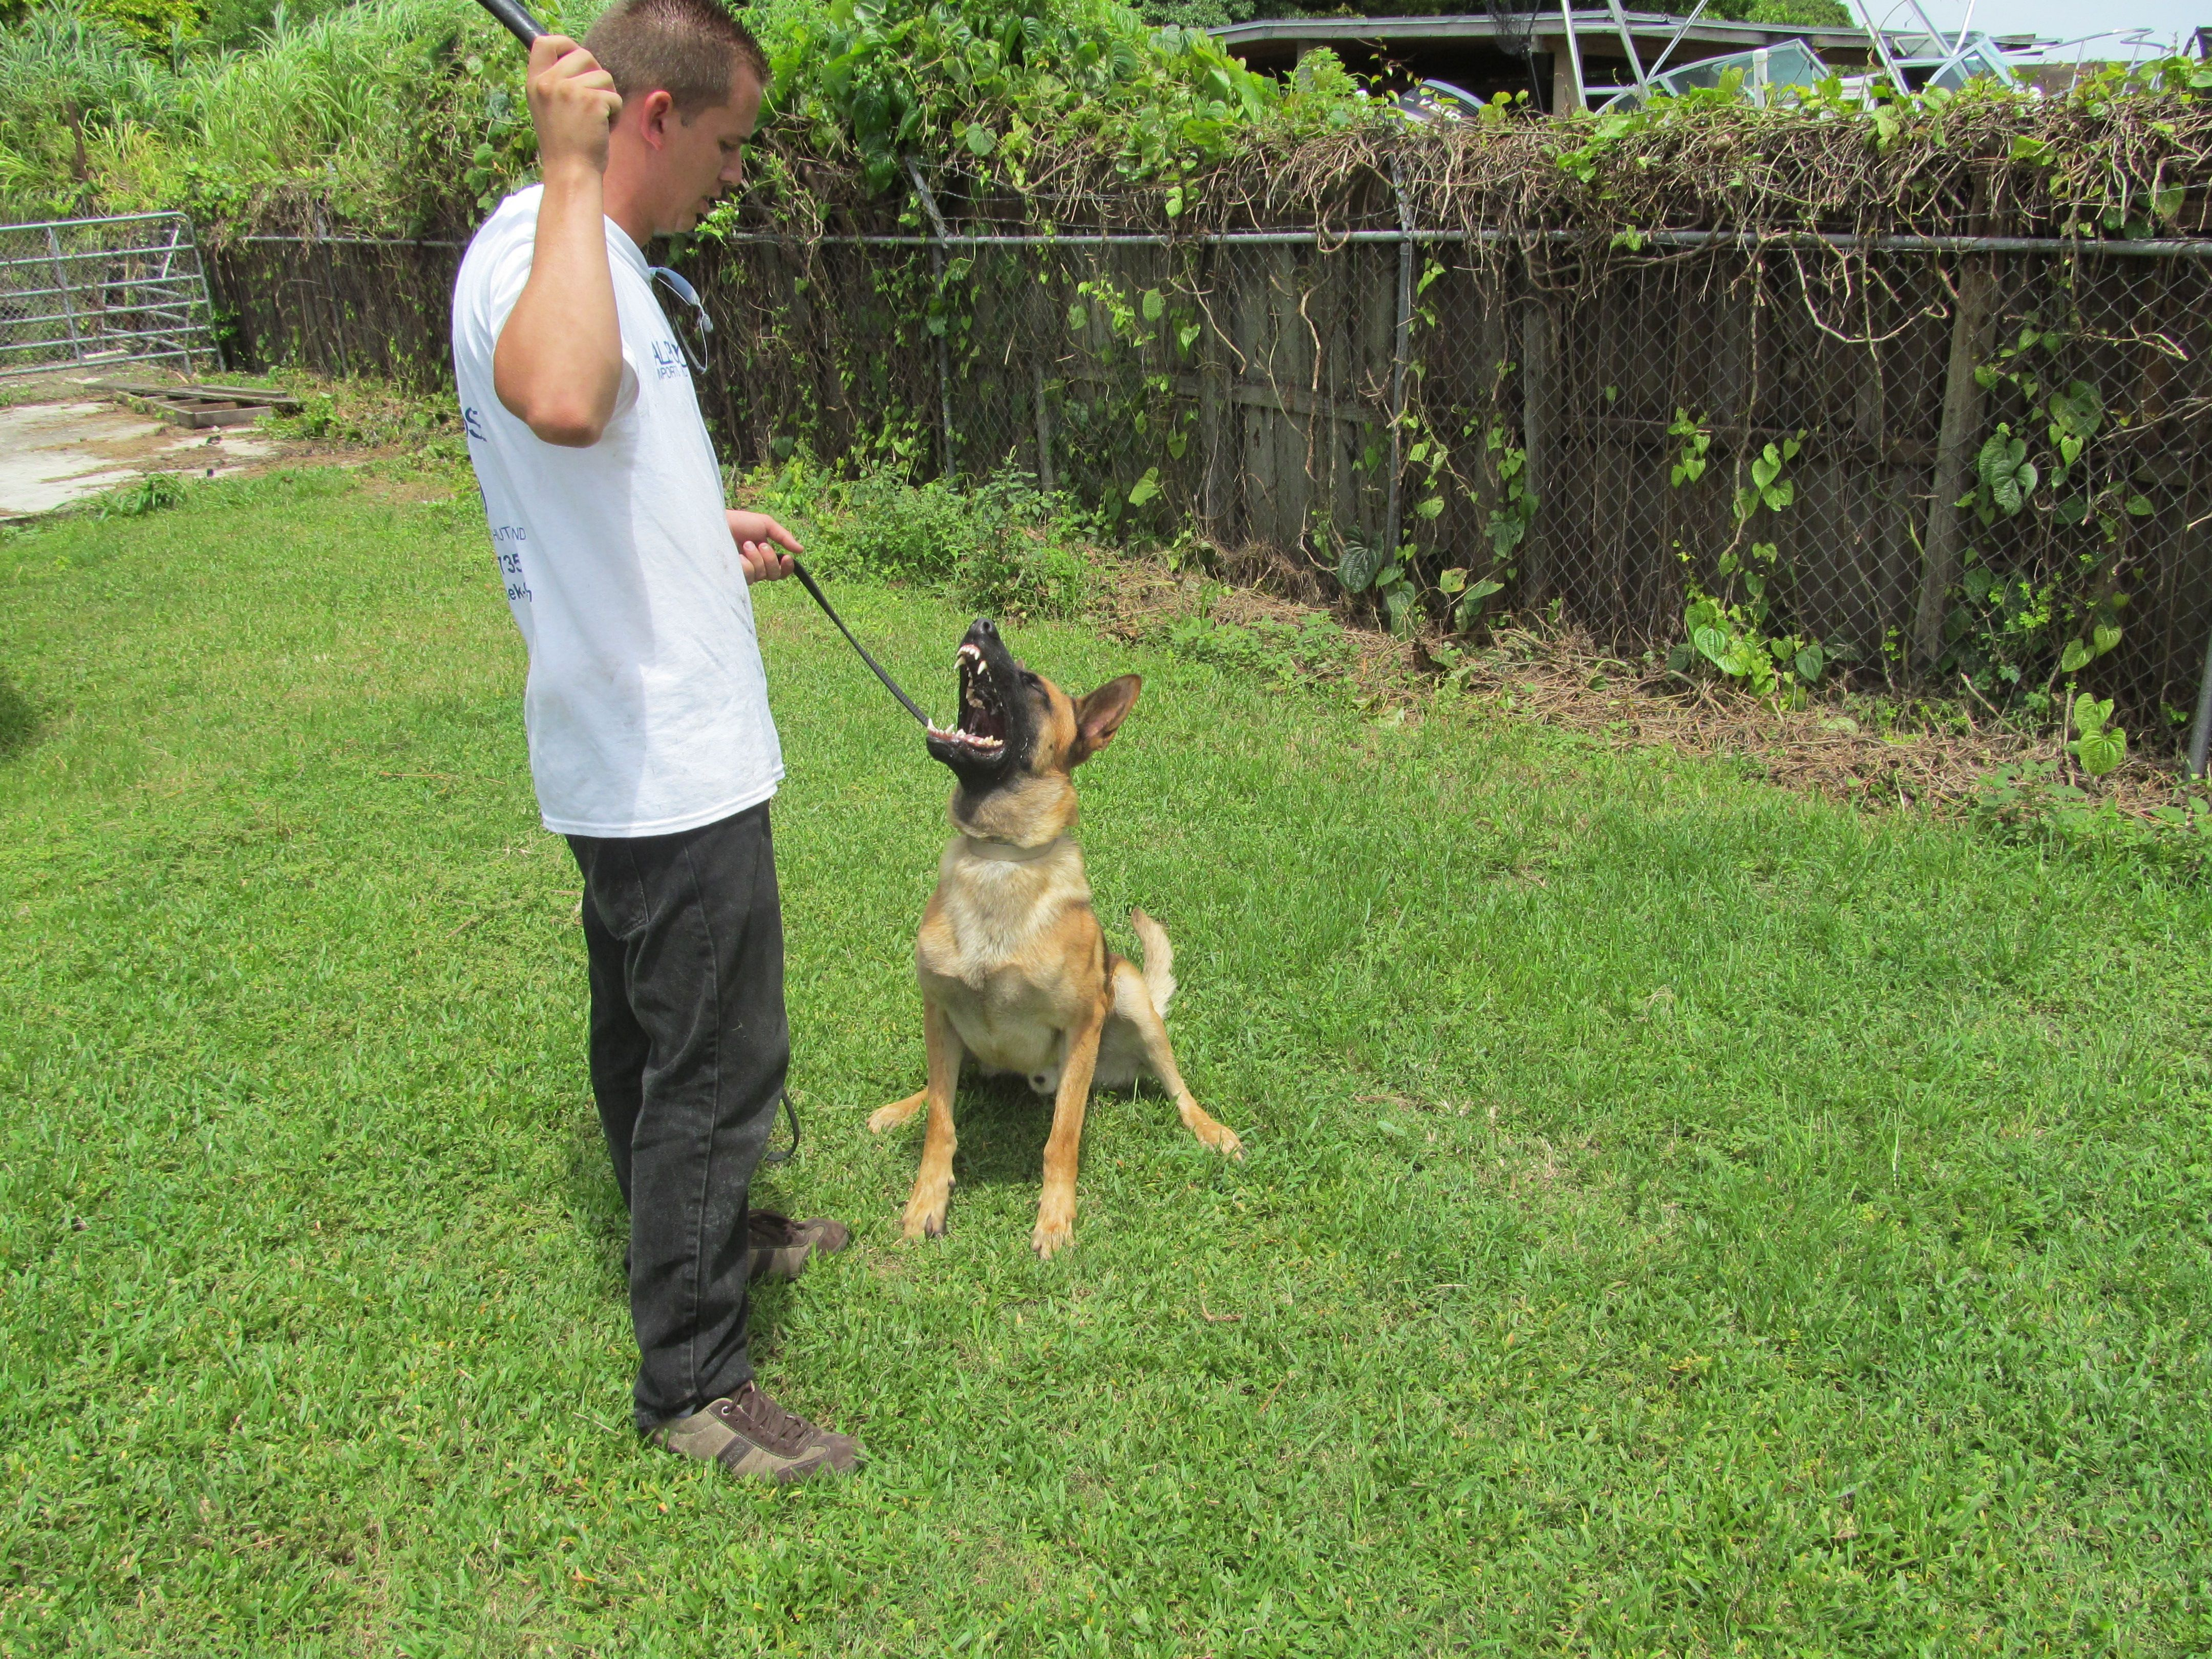 Trained Dogs For Sale Miami All Purpose K 9 Trained Dogs For